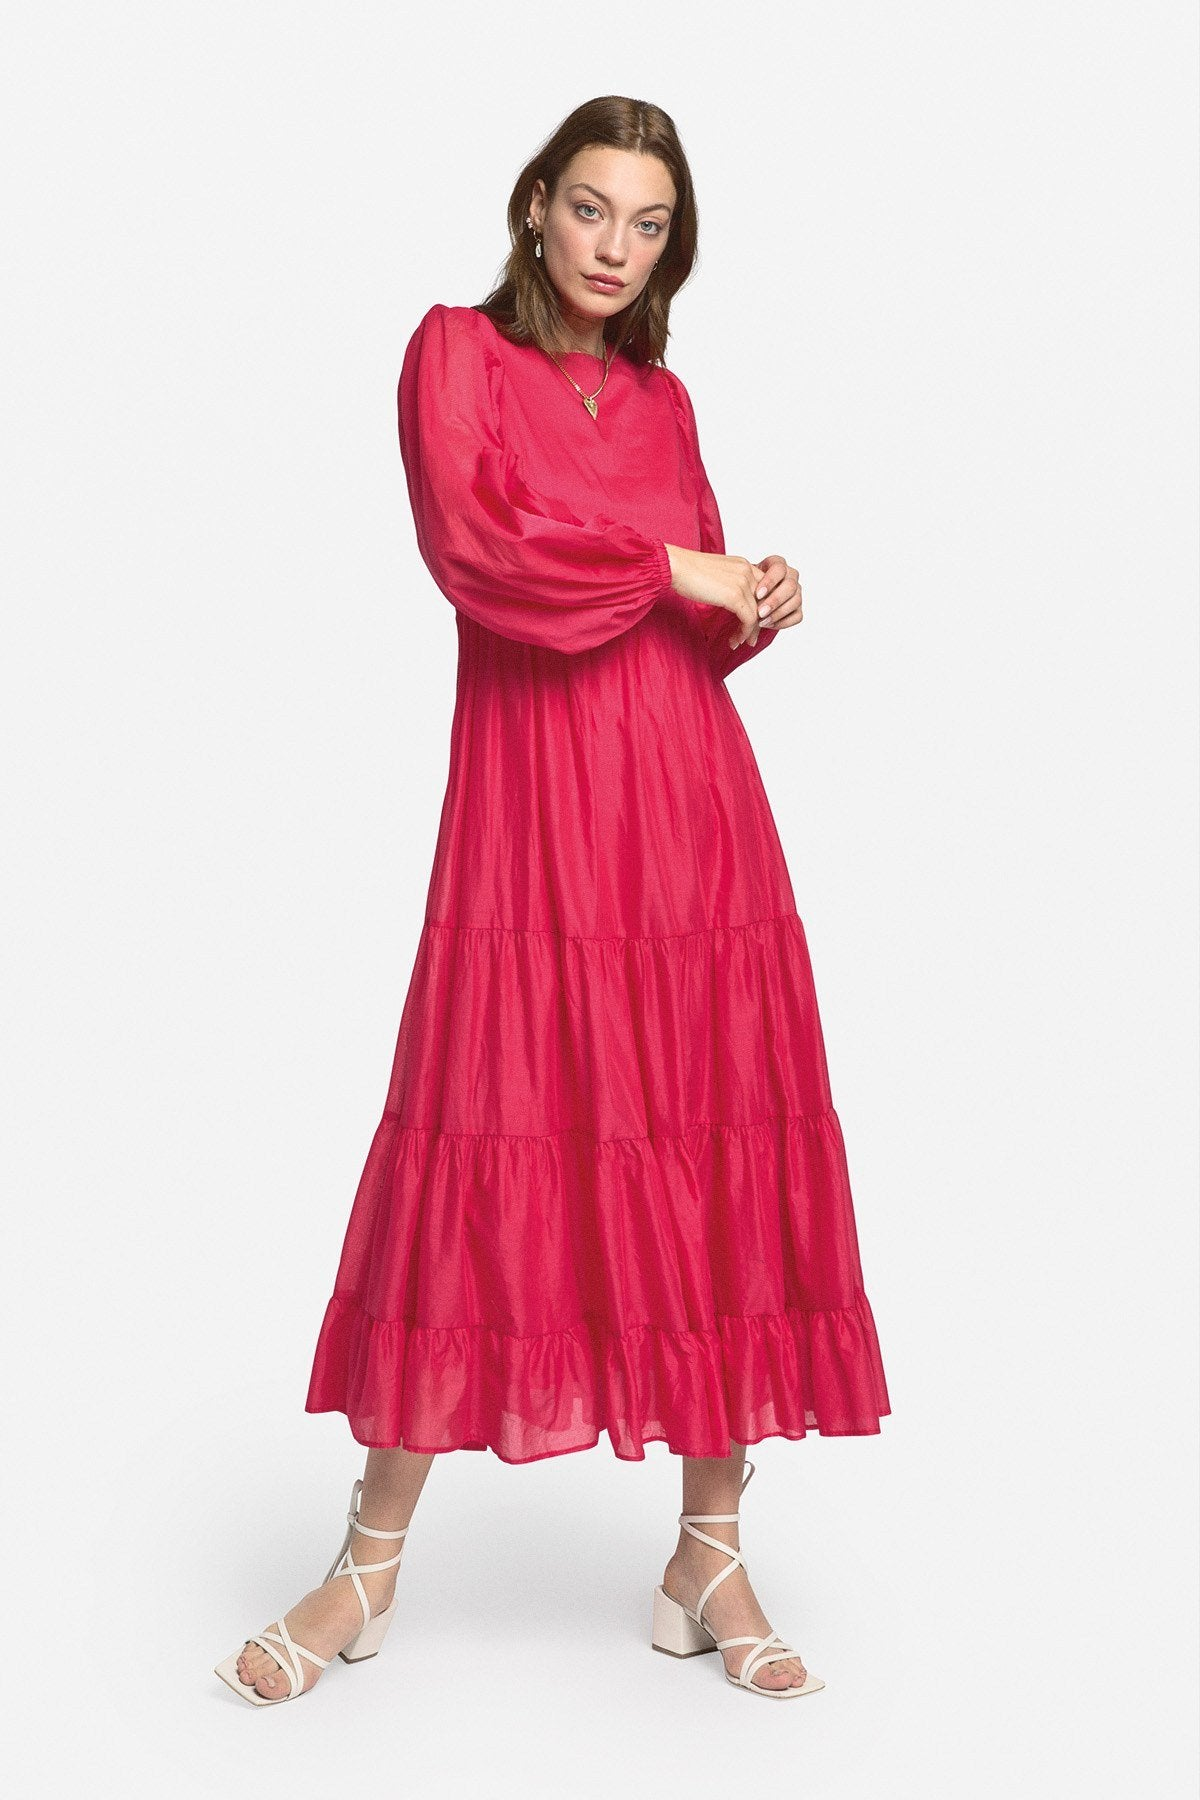 Ottodame - Cotton Long Dress with Ruffles - Pink O3